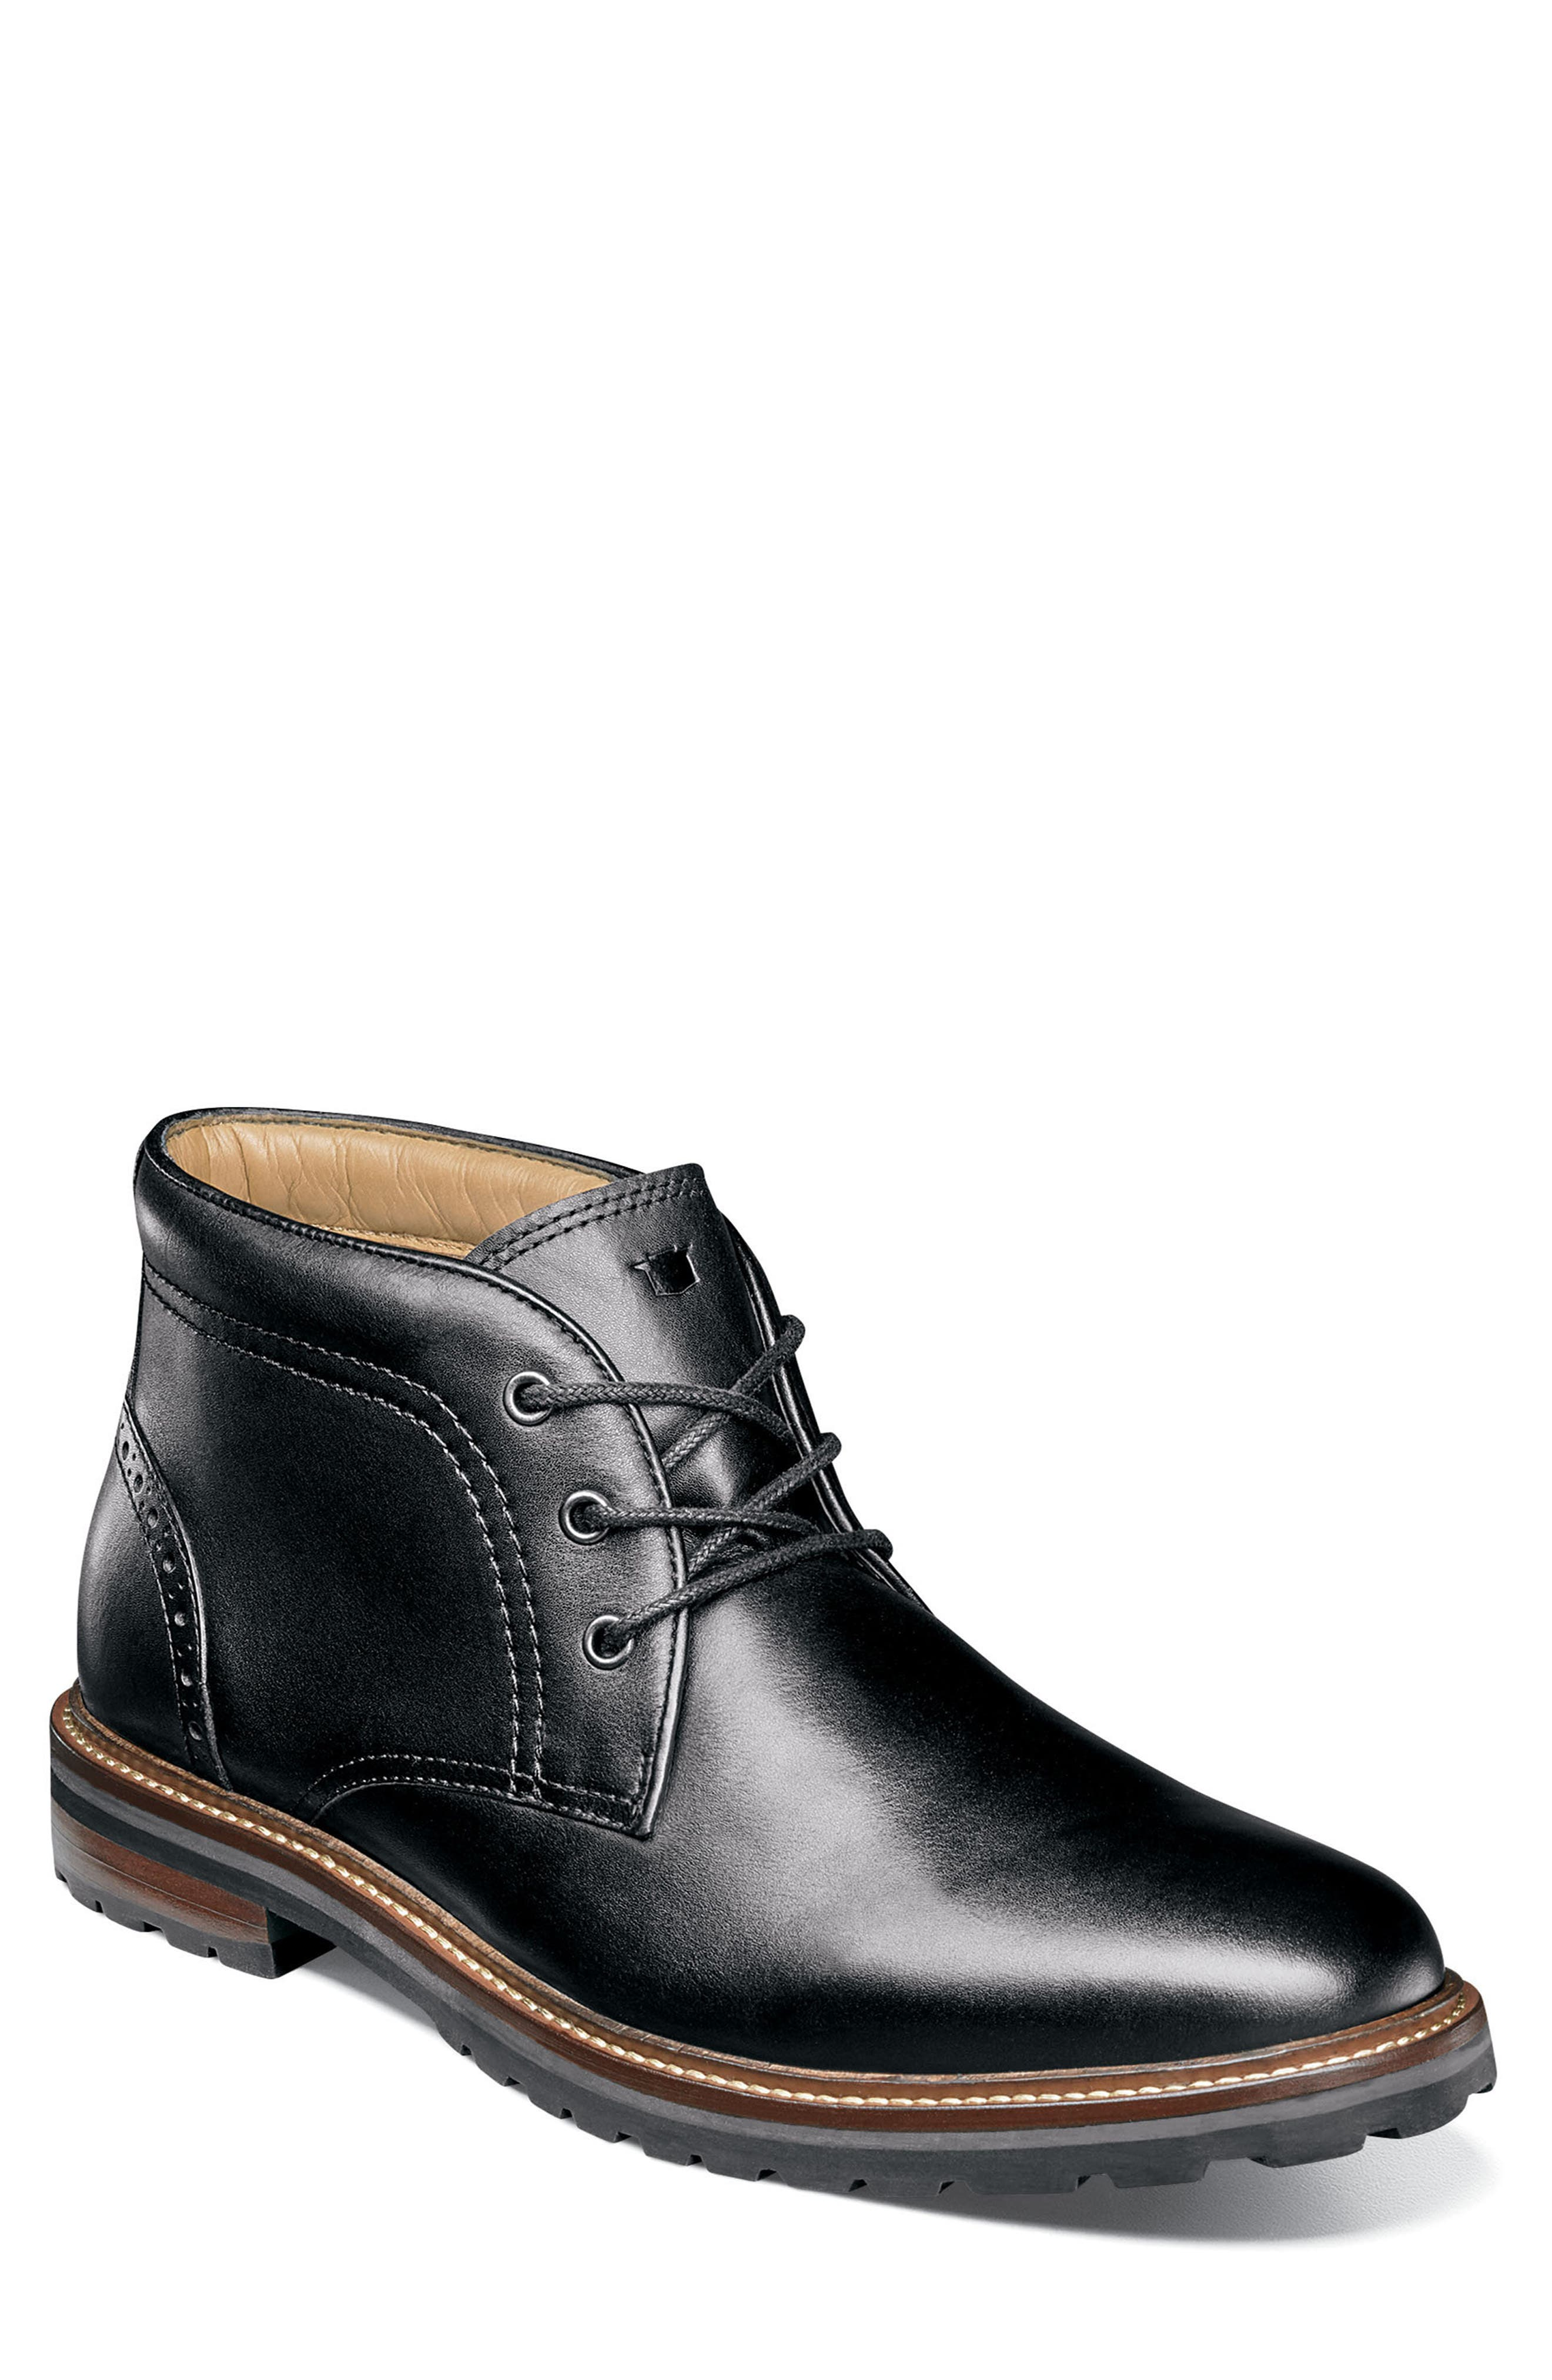 Estabrook Lugged Chukka Boot,                             Main thumbnail 1, color,                             BLACK LEATHER